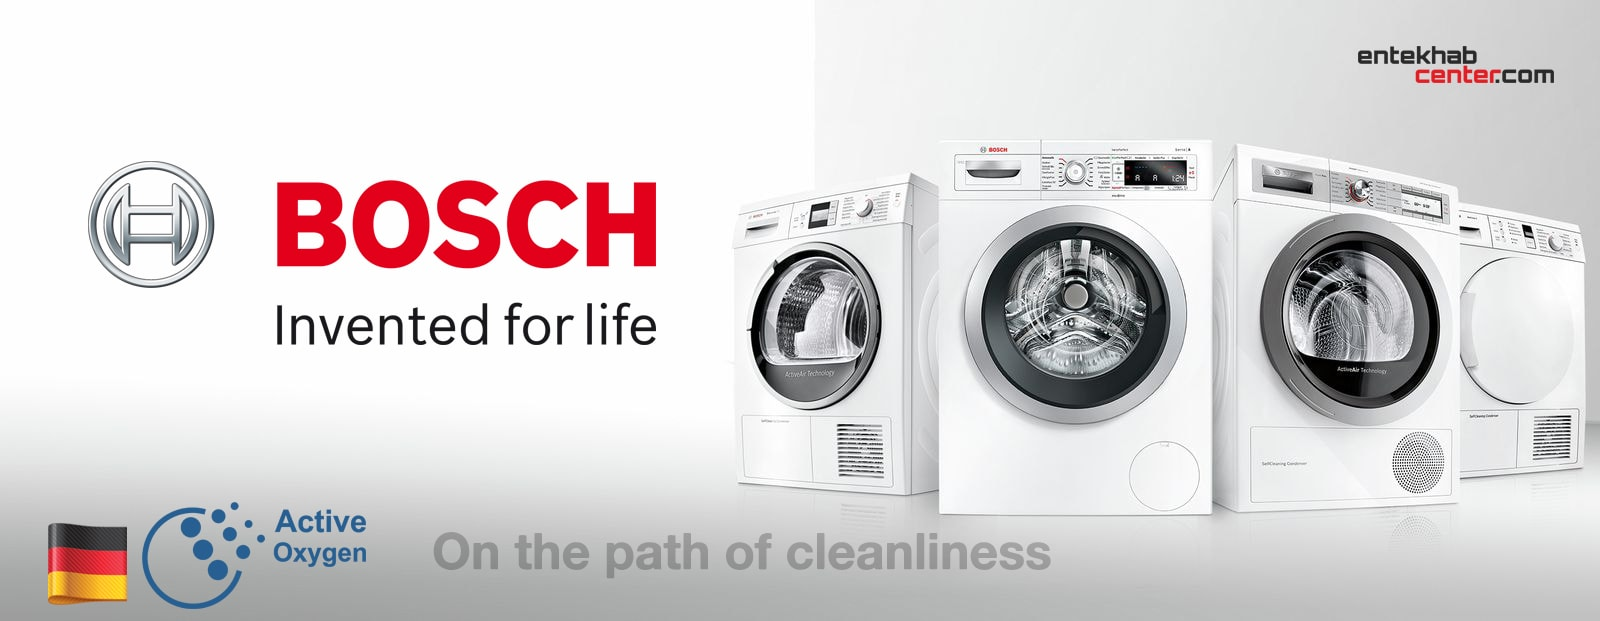 Bosch Washing Machine Review Bosch allergy technology